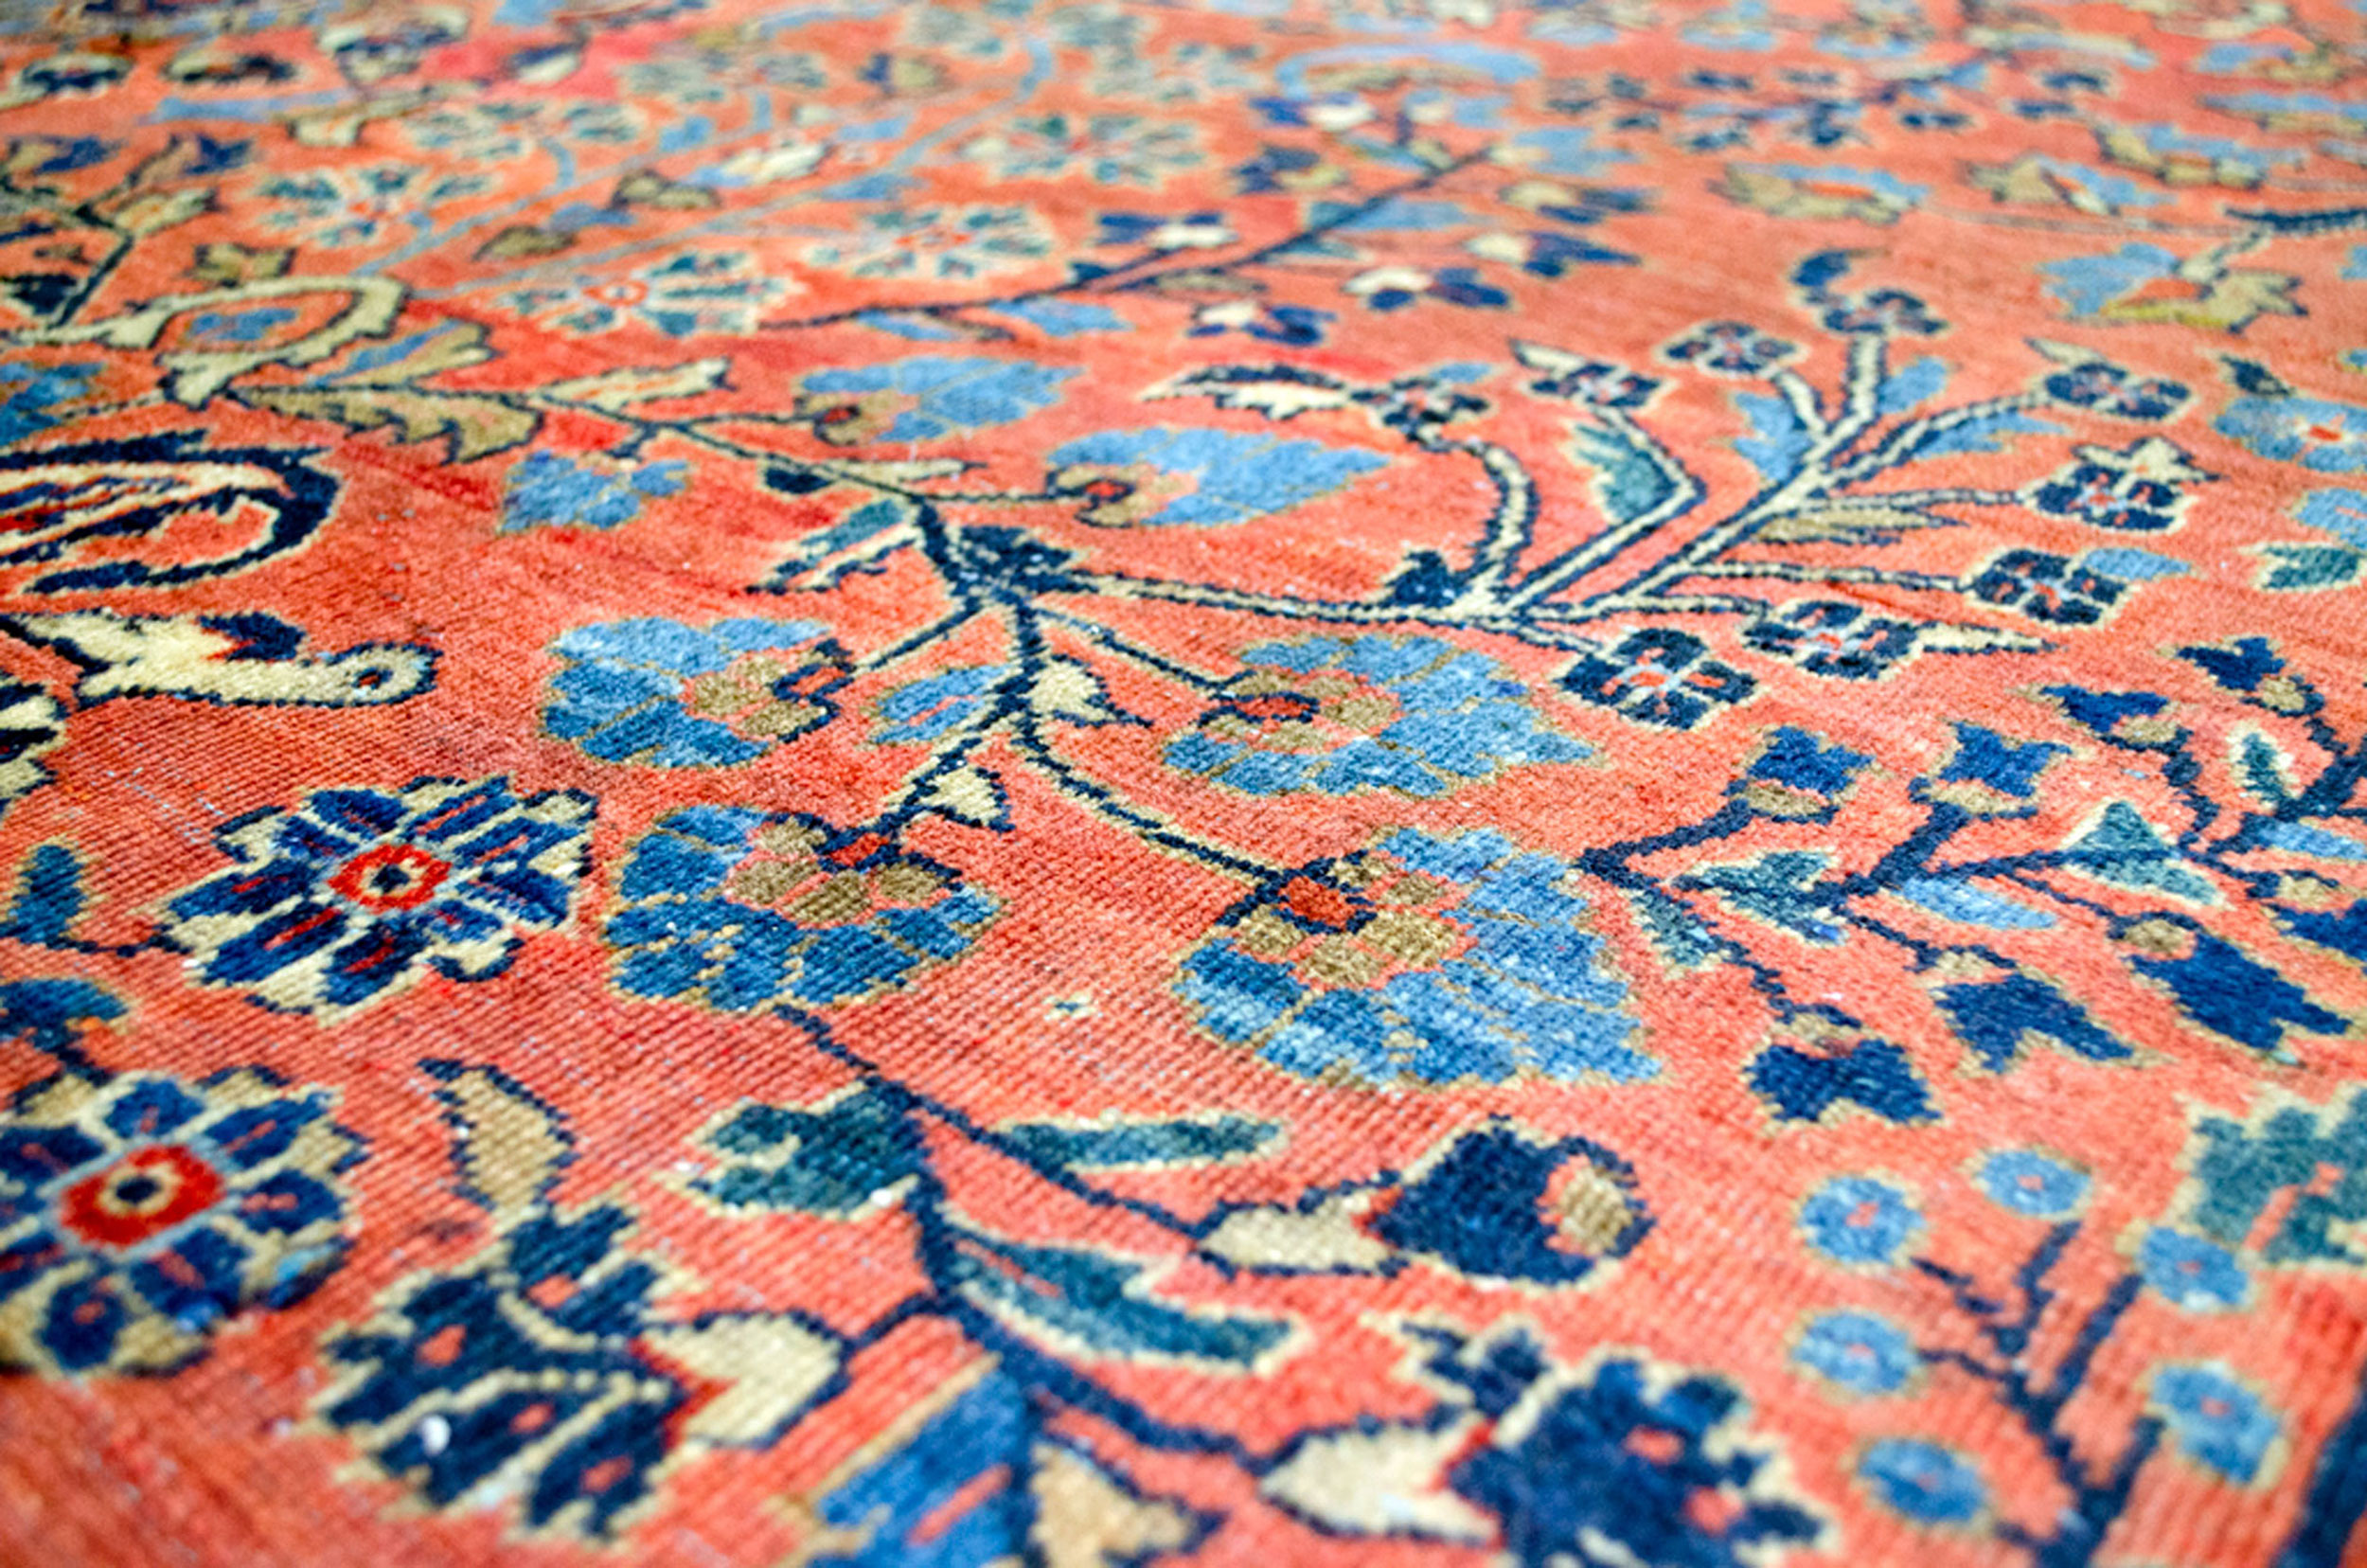 Antique Saruk Carpet 321x233cm